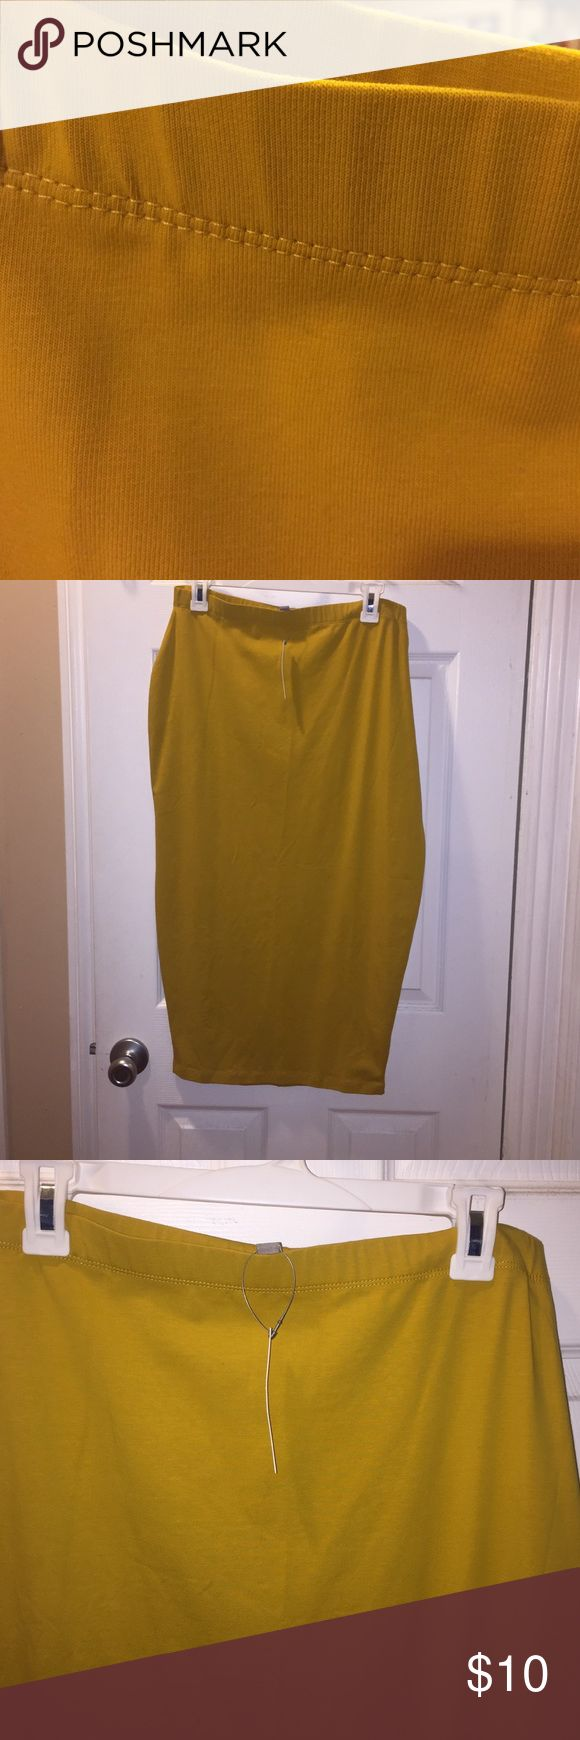 Asos Curve Mustard Pencil Skirt. 14 Great color, firm fit. Never Worn! Second picture depicts true color. ASOS Curve Skirts Pencil